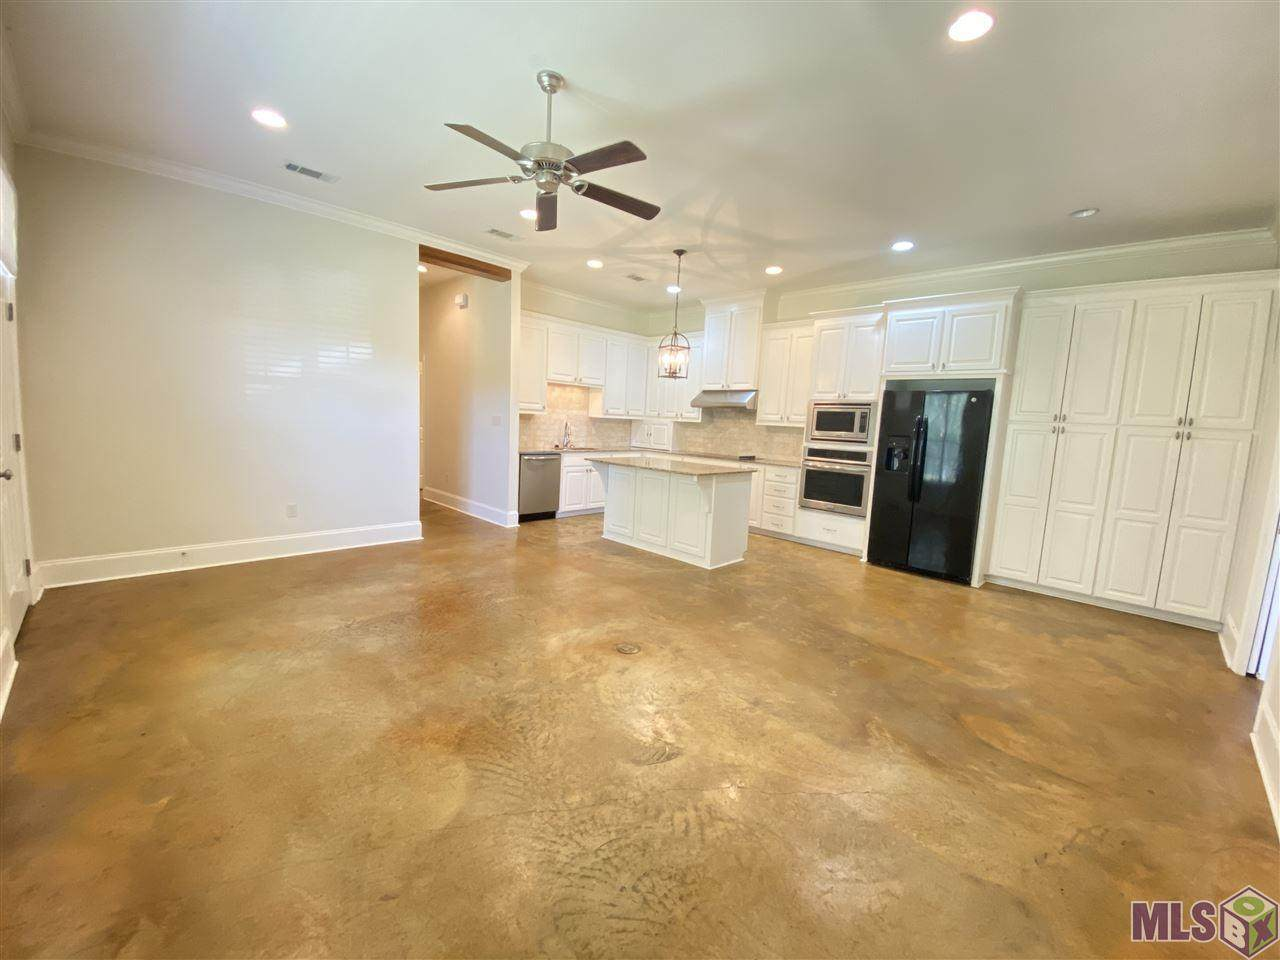 13789 Azalea Dr - Photo 1